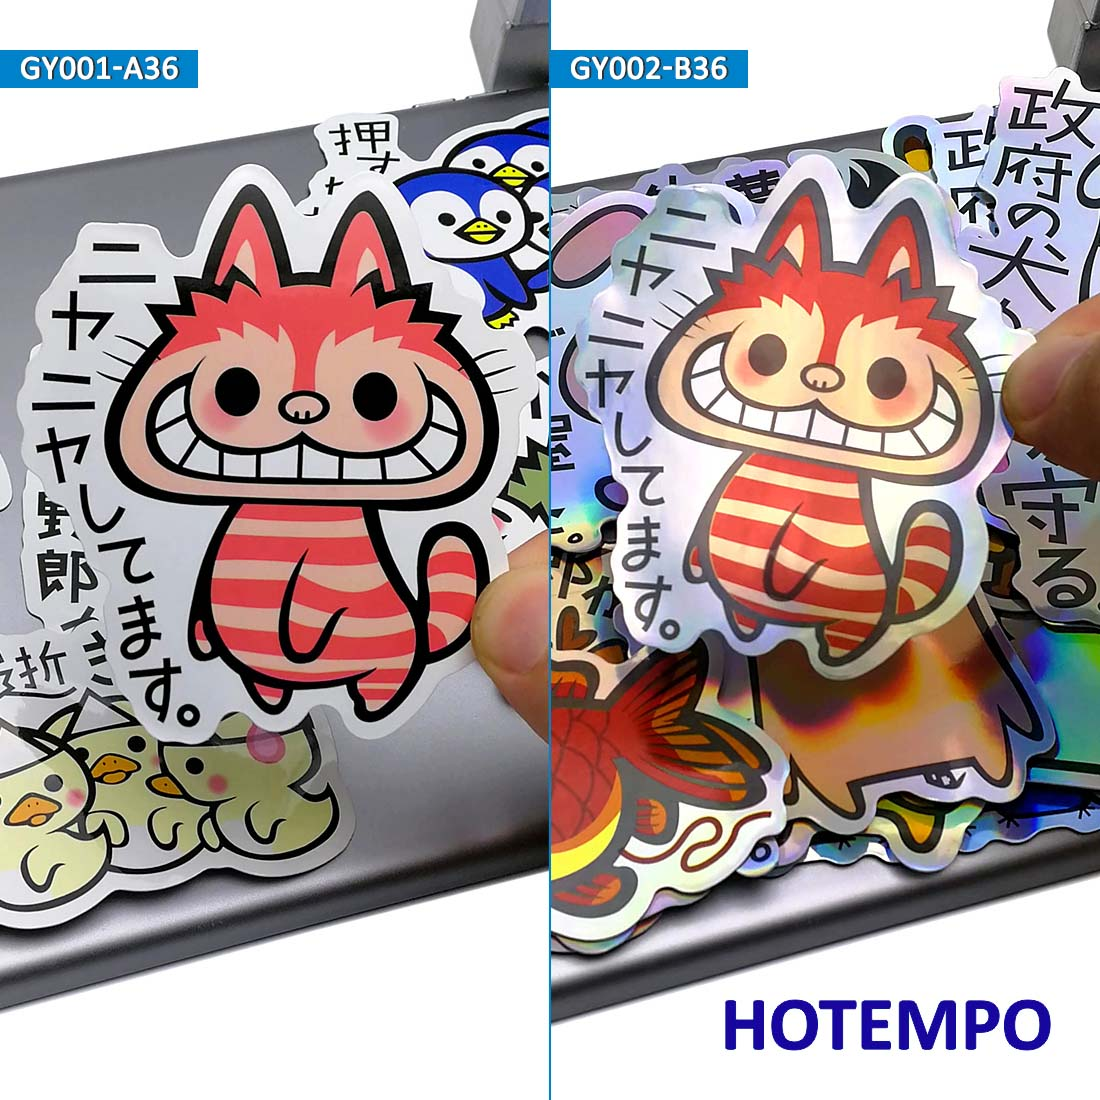 36pcs Cute Cartoon Slogan Animal Style Stickers Colorful Laser for Child Kid Gift Phone Laptop Luggage Suitcase Stationery Decal